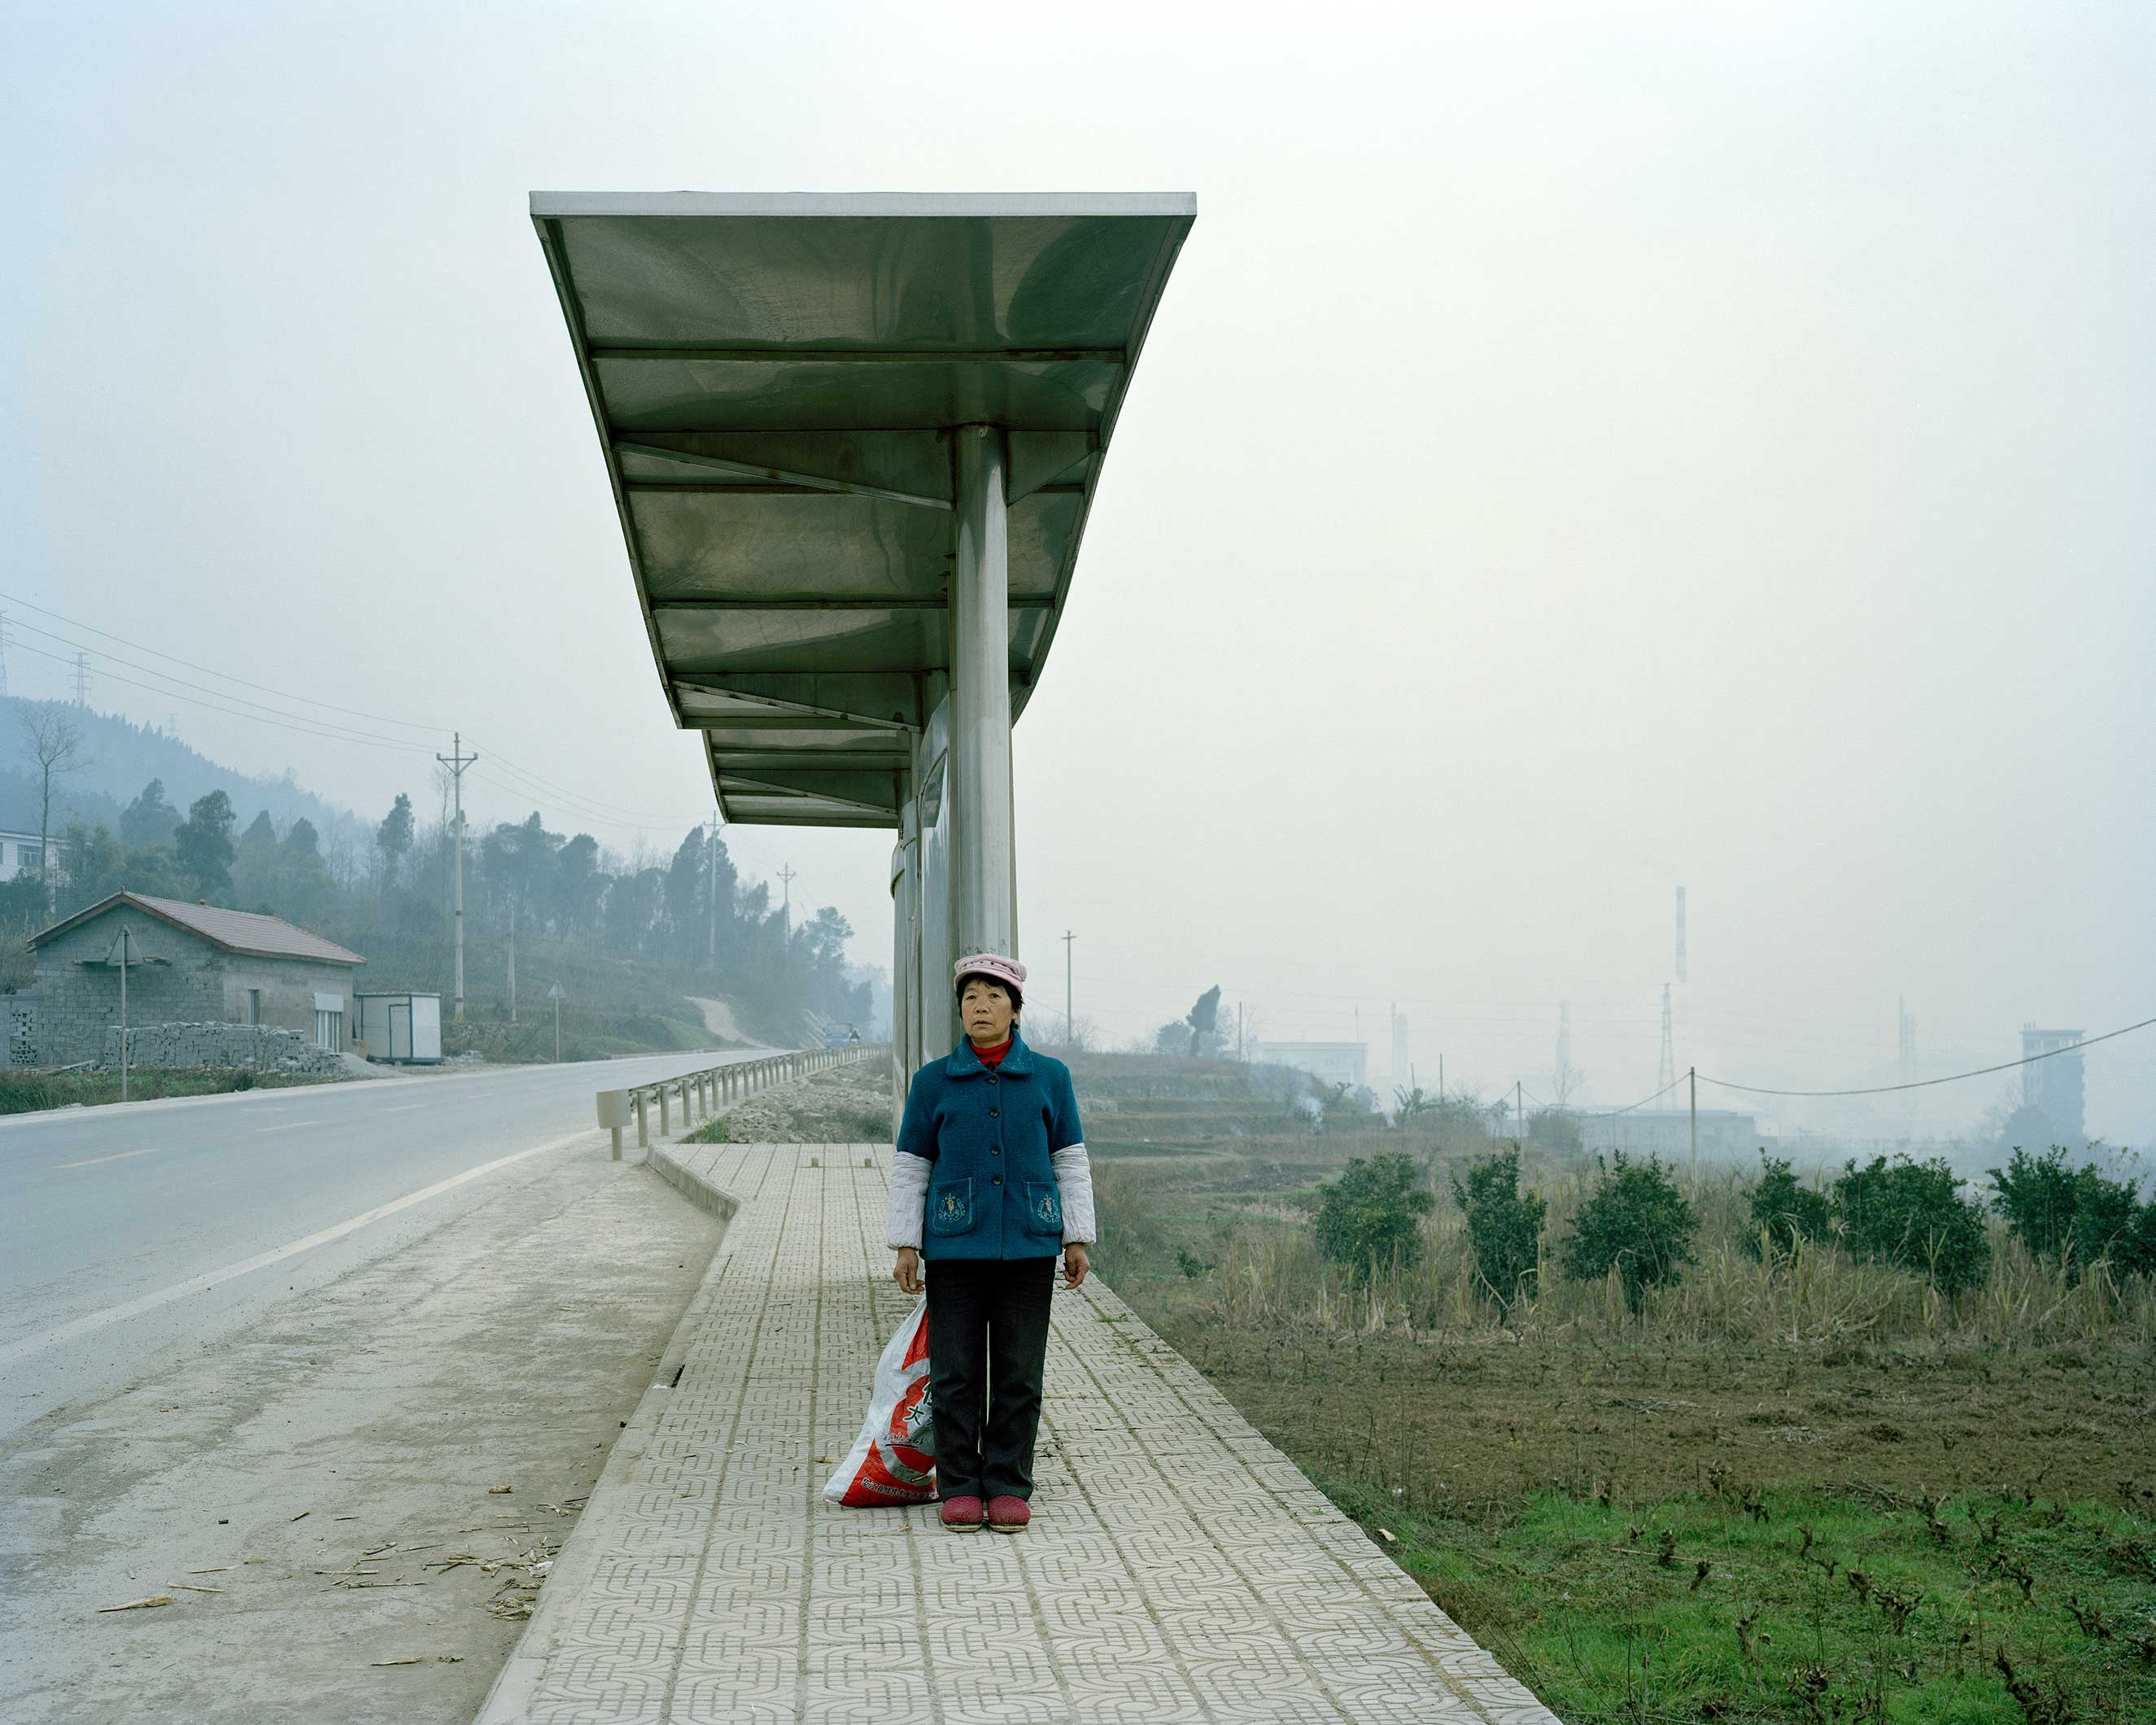 Baitao village, China, January 2015. Ms Peng, who is 62 years old, waiting for the bus.